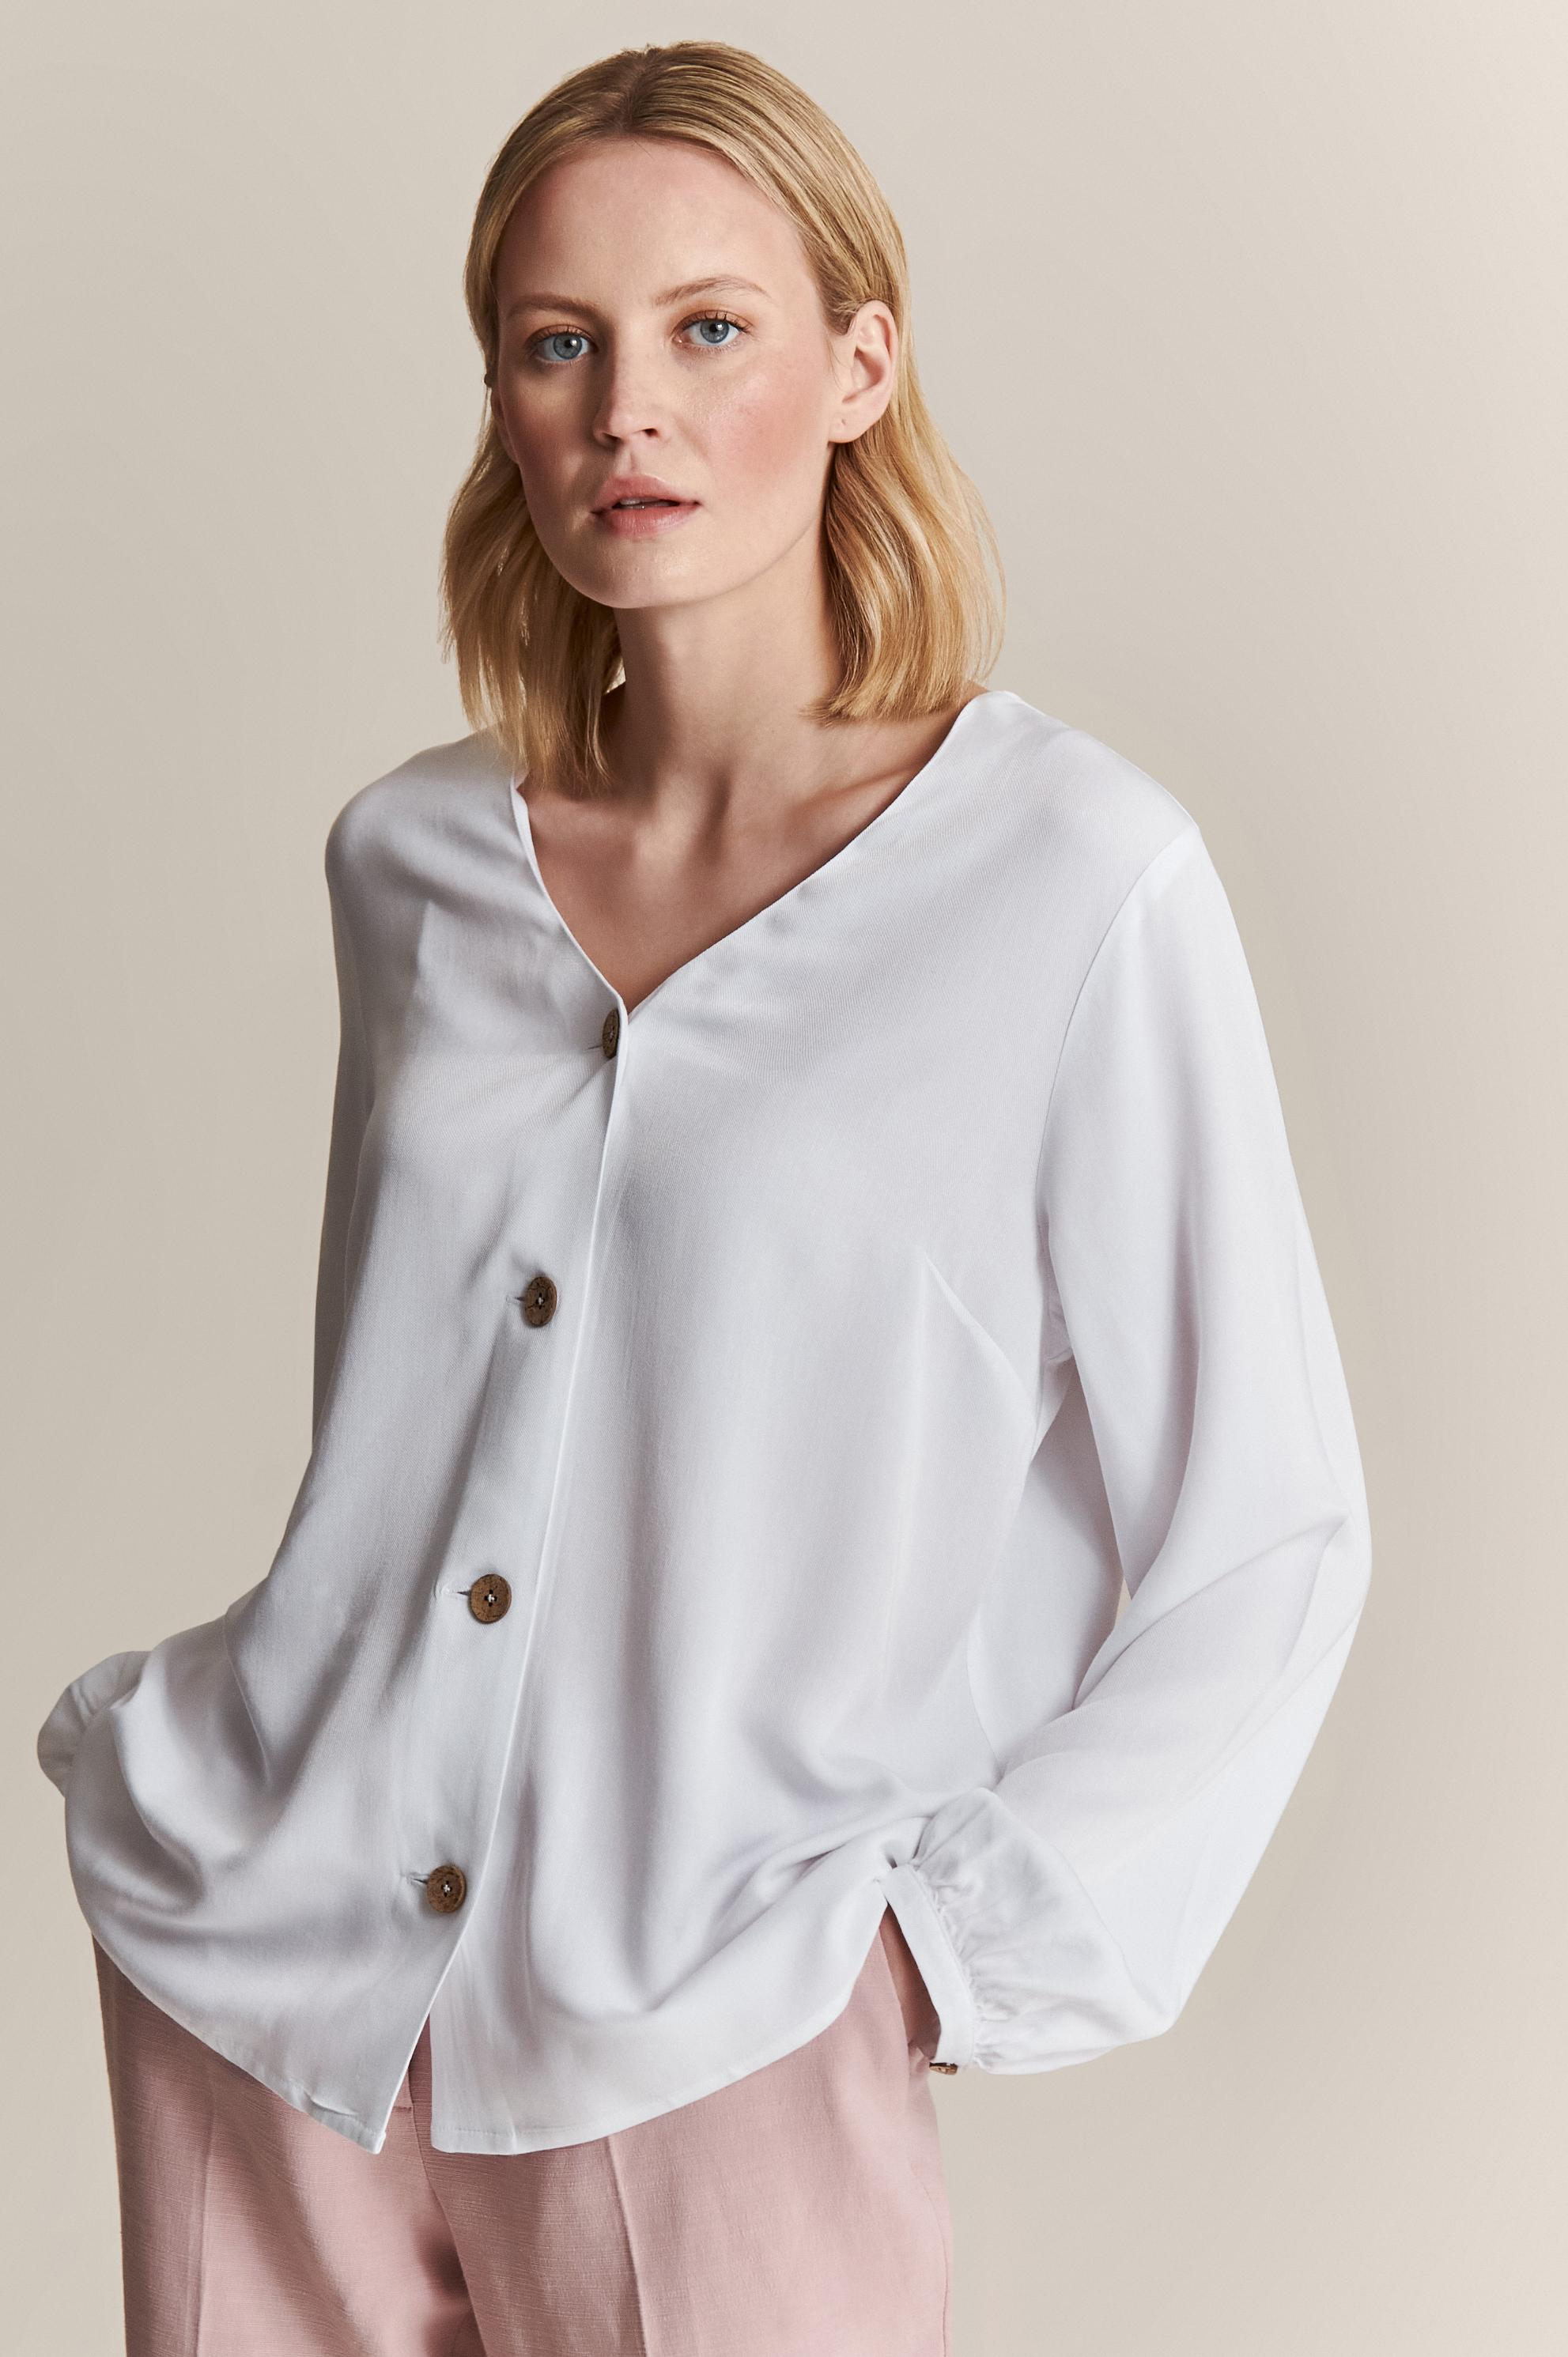 BLOUSE FASTENED WITH BUTTONS JOLINI